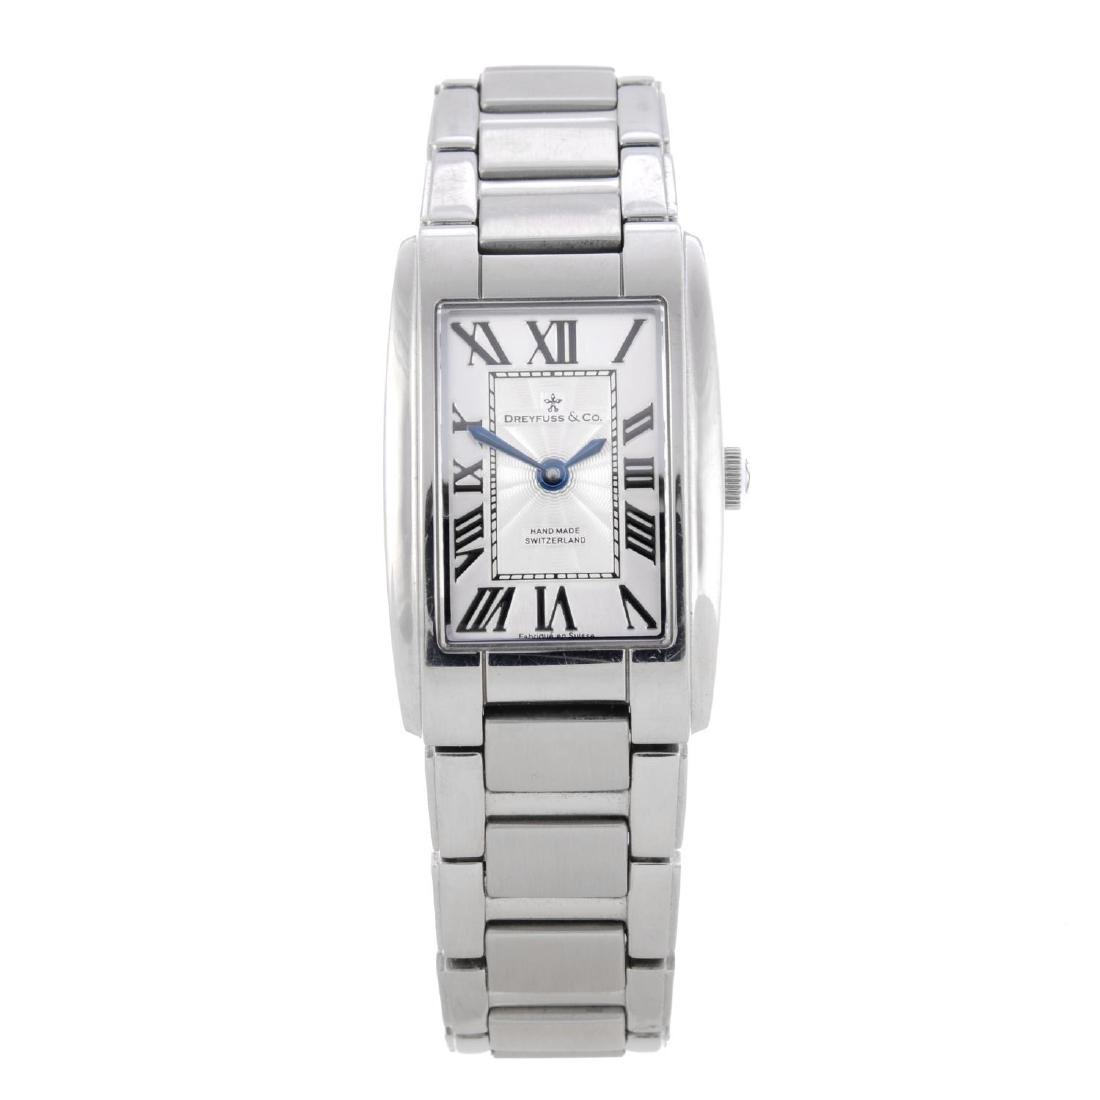 DREYFUSS & CO. - a lady's bracelet watch. Stainless